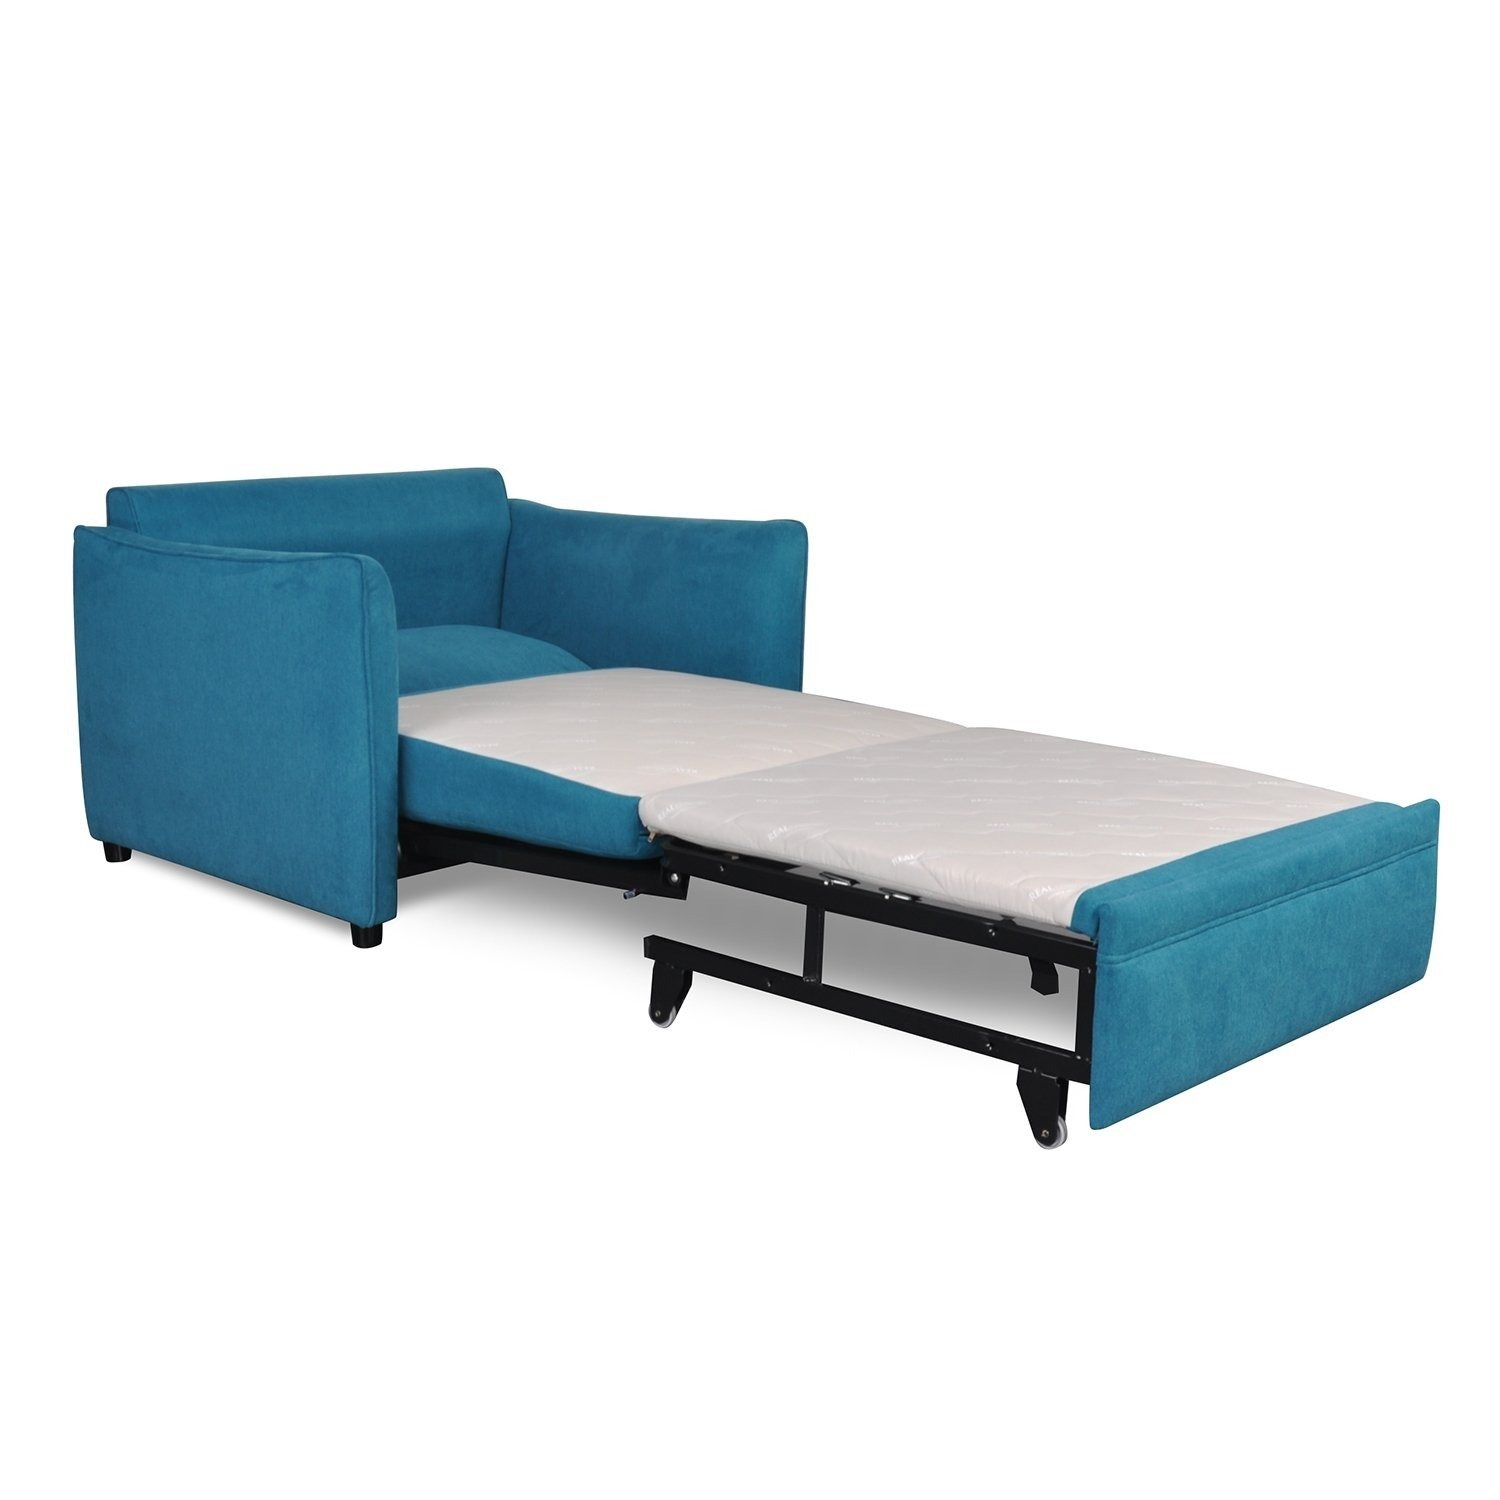 Best Pull Out Sofa Bed In 2019 The 10